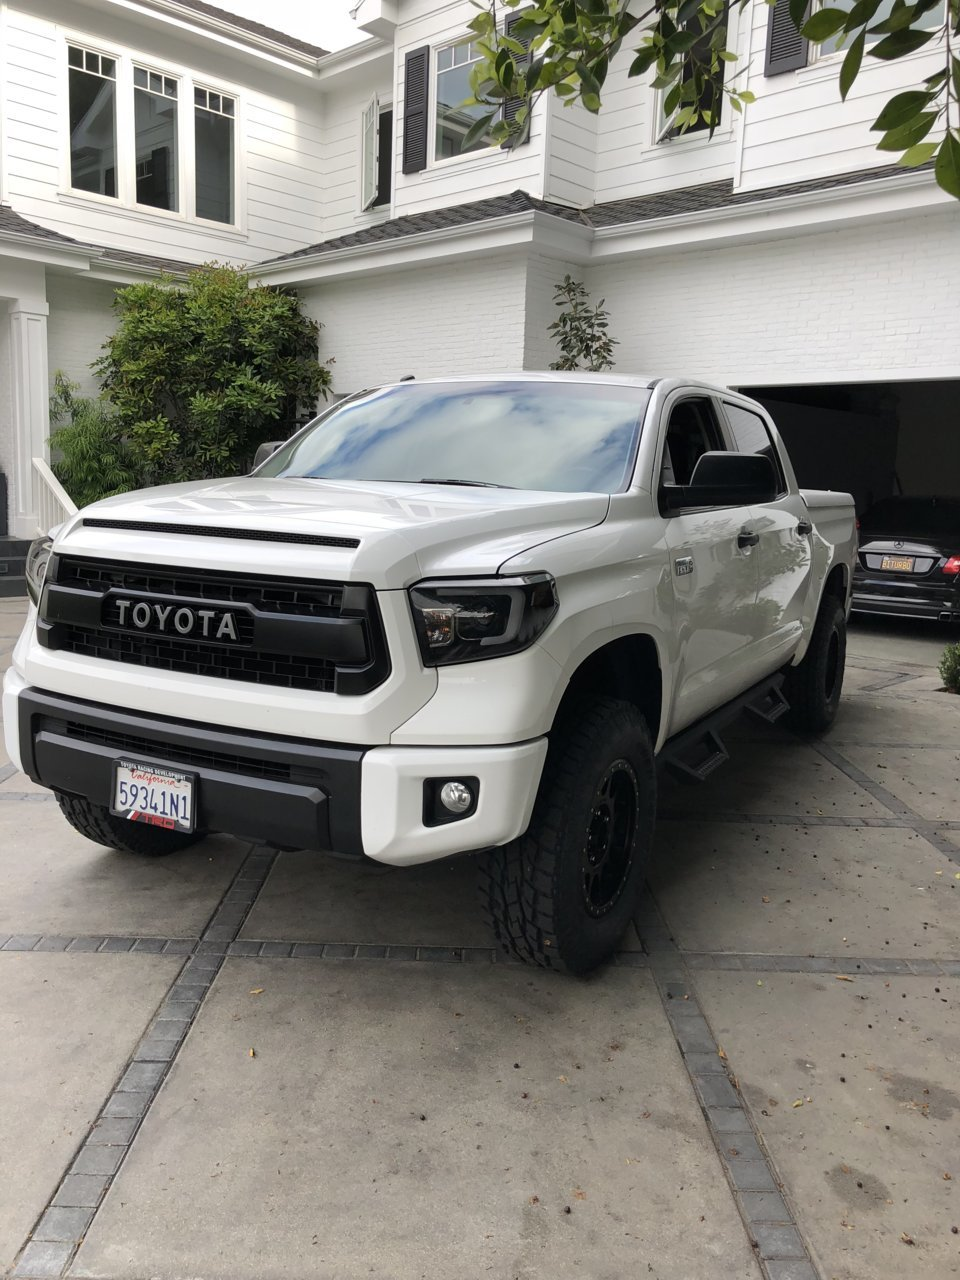 Adding 33's with only a leveling kit | Toyota Tundra Forum